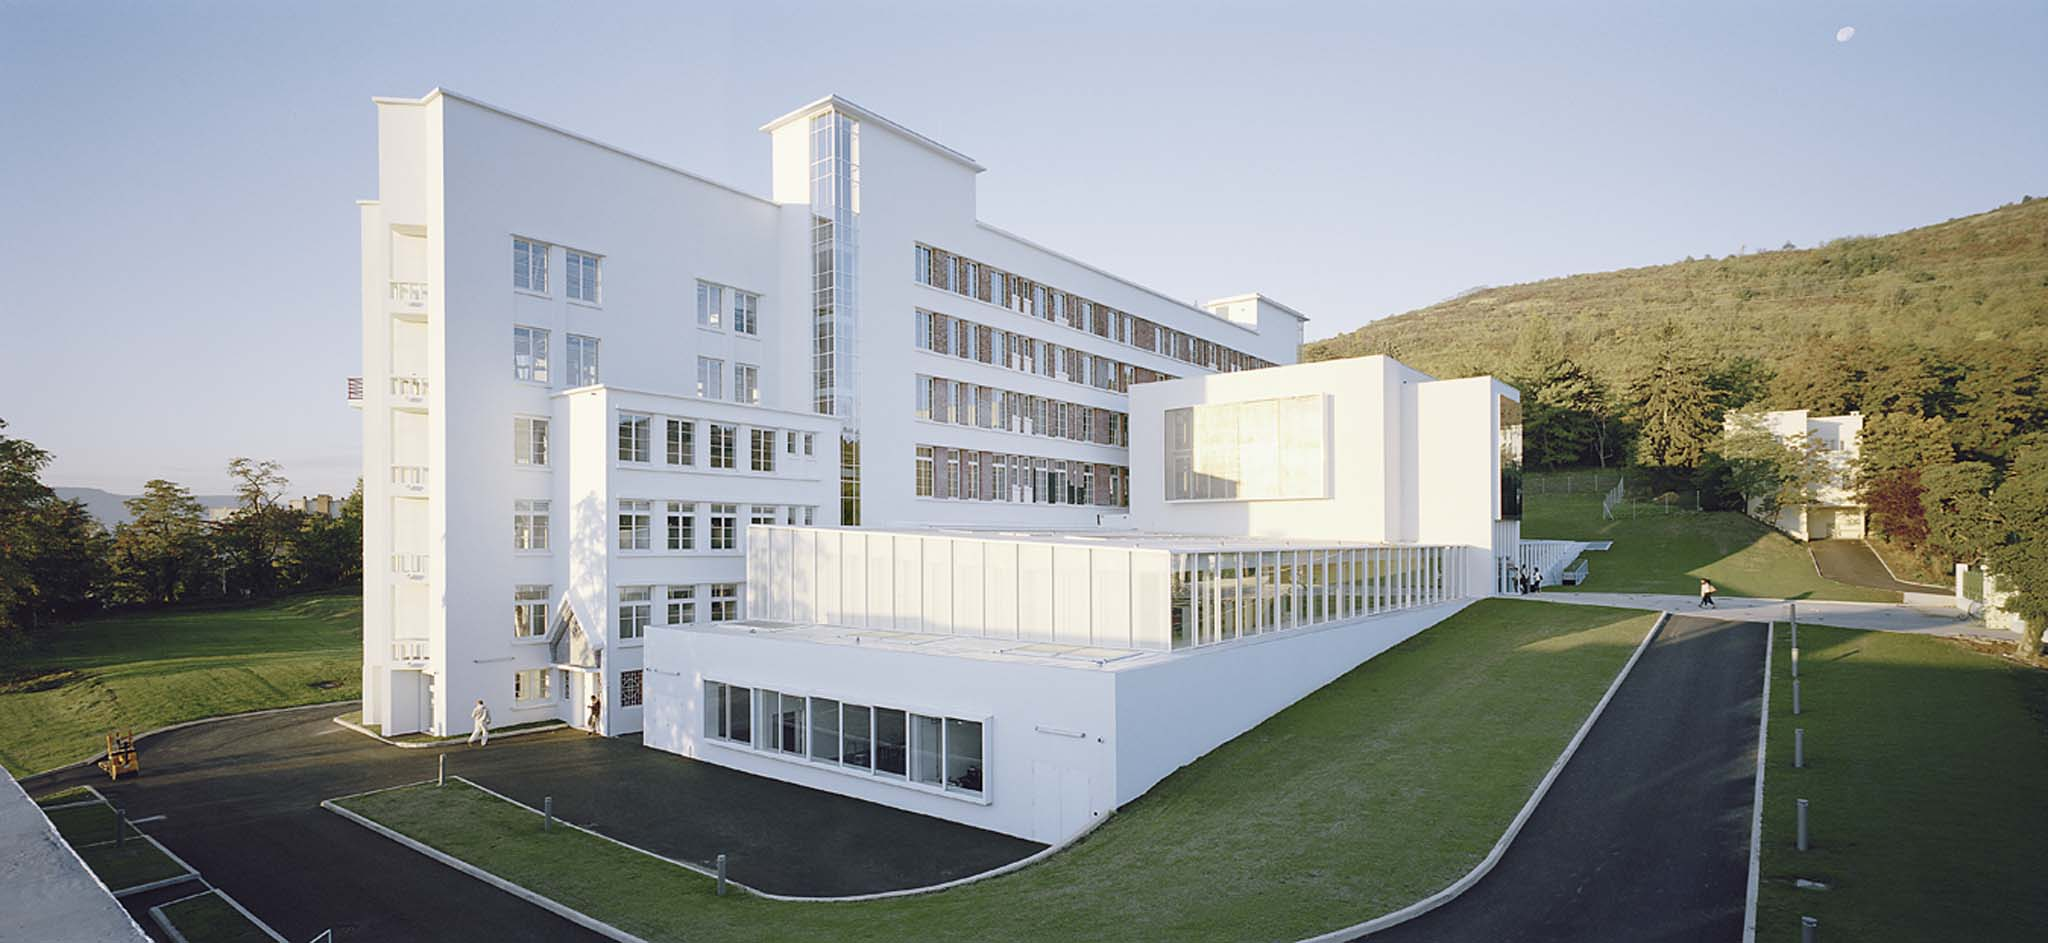 nouvelle cole d 39 architecture de clermont ferrand point